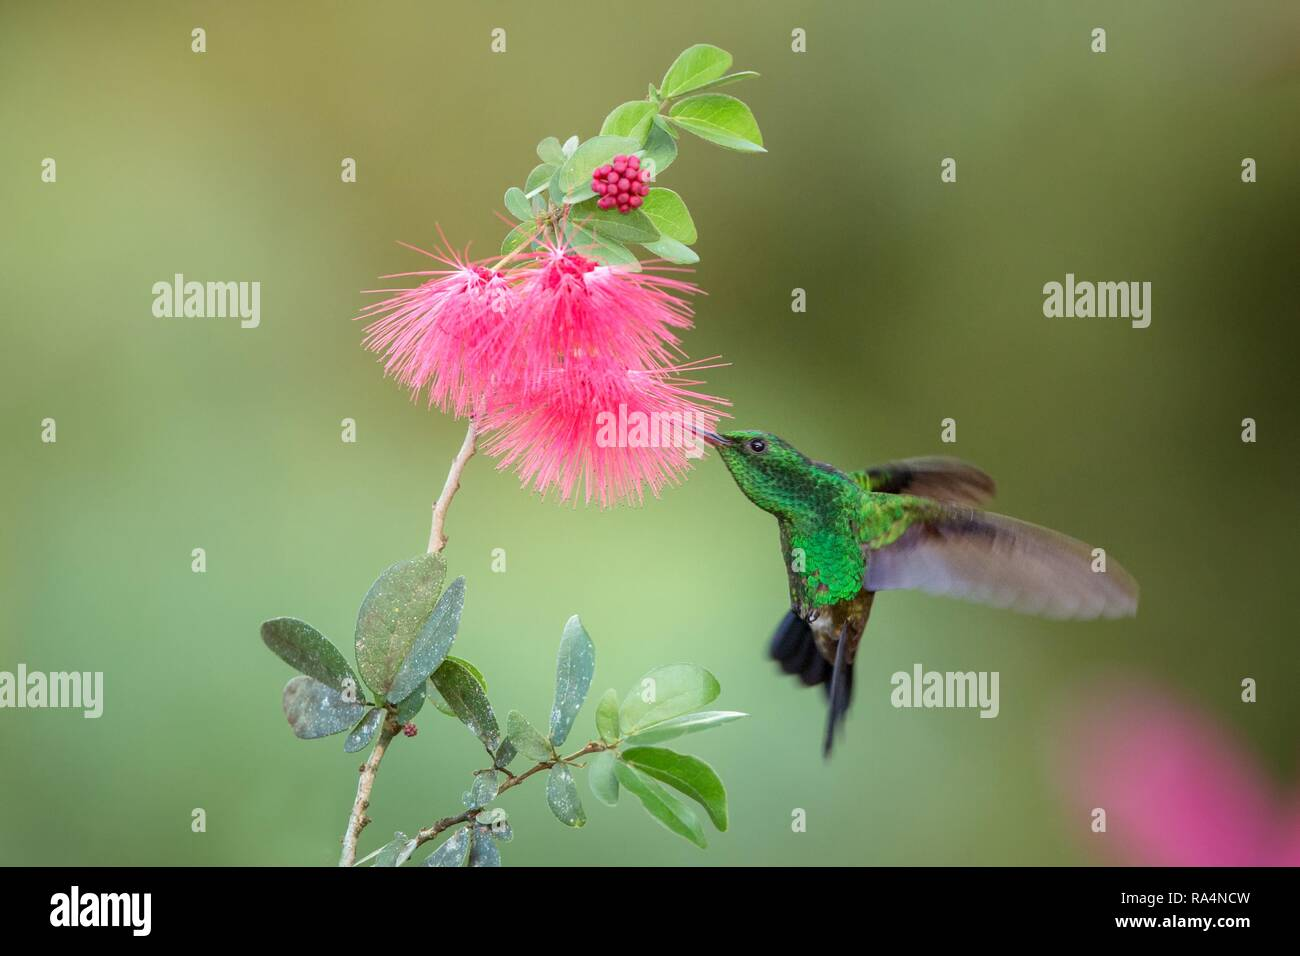 Copper Rumped Hummingbird Hovering Next To Pink Mimosa Flower Bird